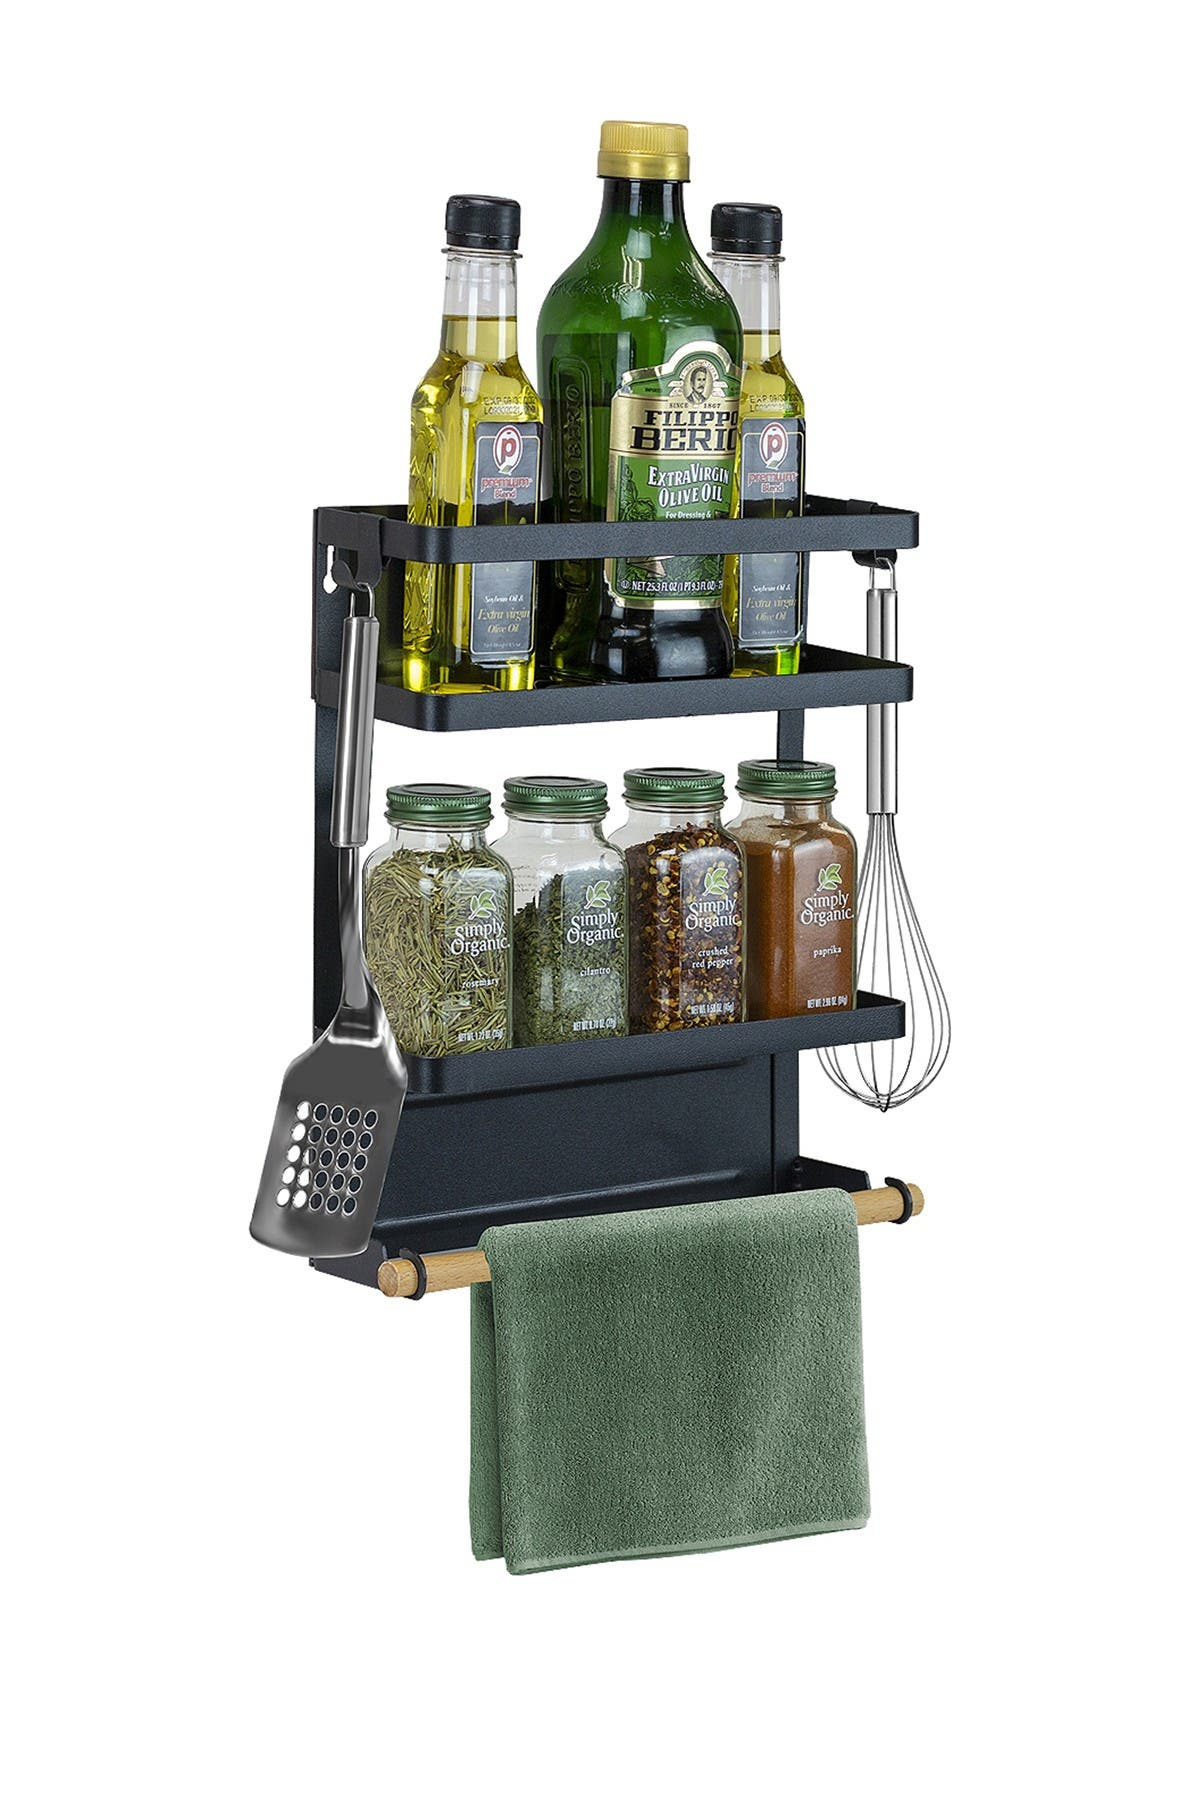 Image of Sorbus Magnet Spice Rack Organizer - Medium